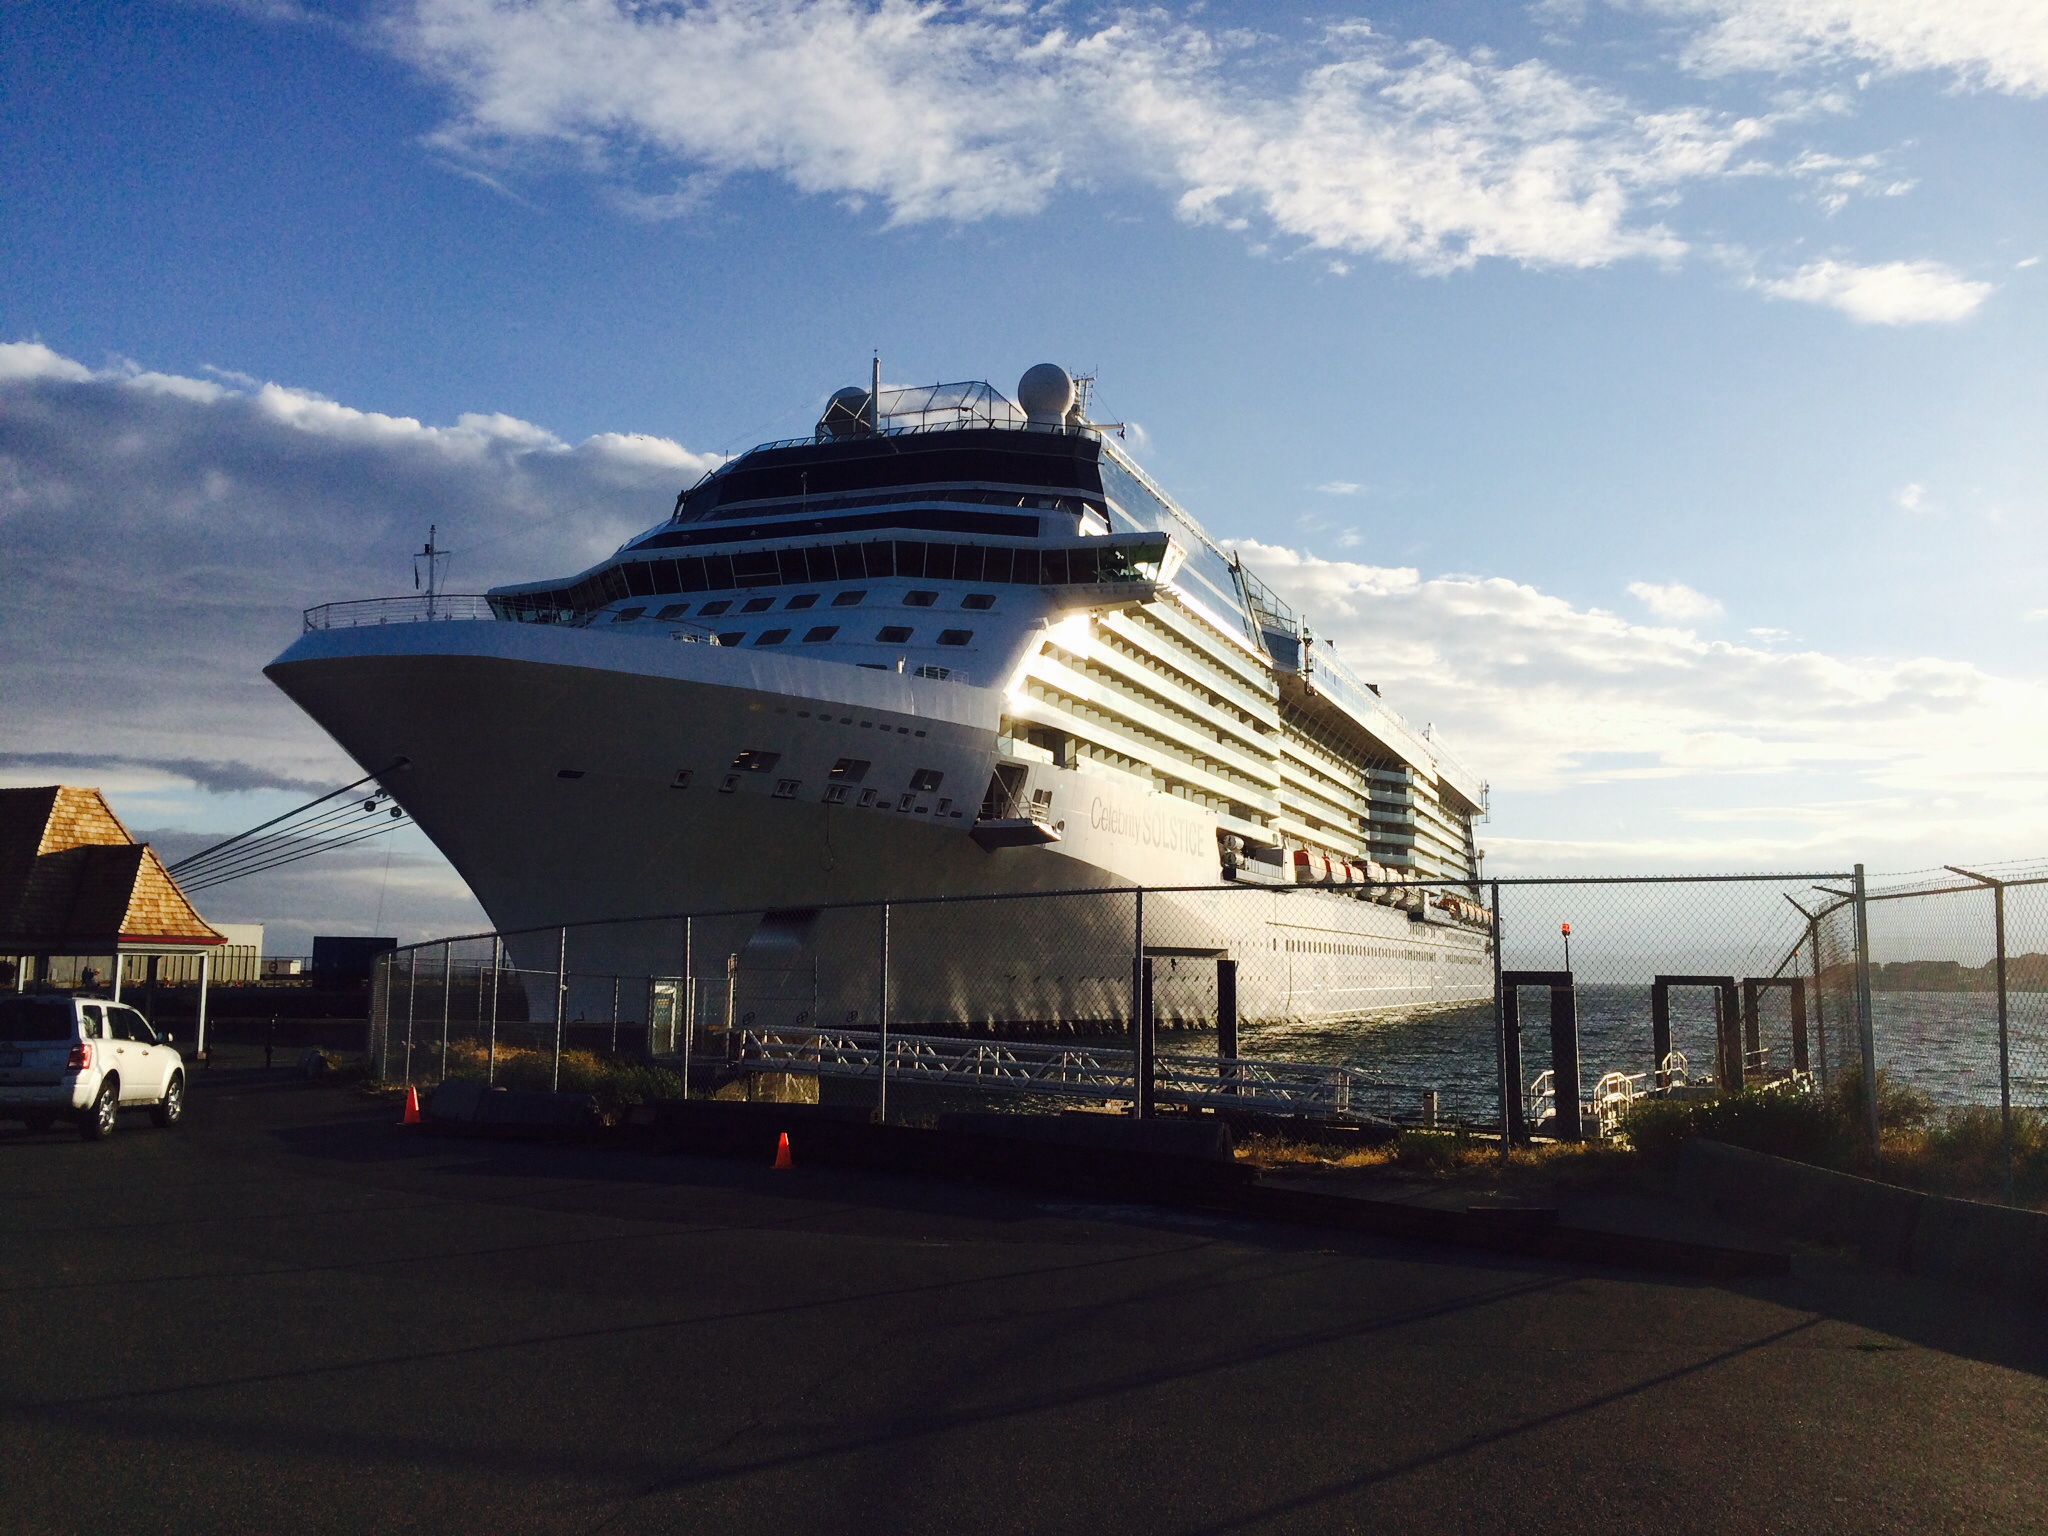 Celebrity Solstice is one of the cruise ships at Ogden Point